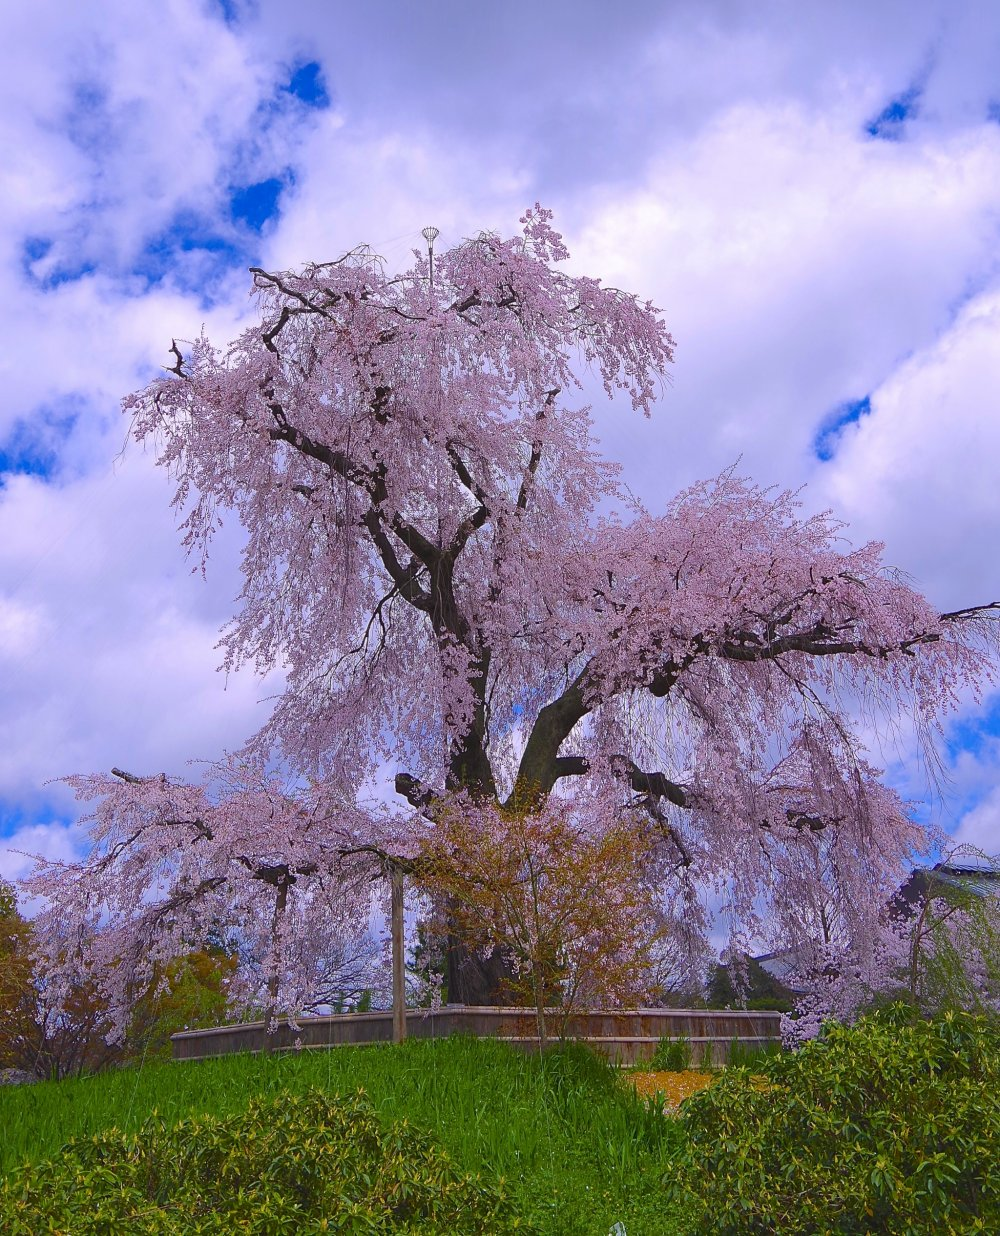 Gorgeous weeping cherry: The most popular cherry trees in Kyoto!